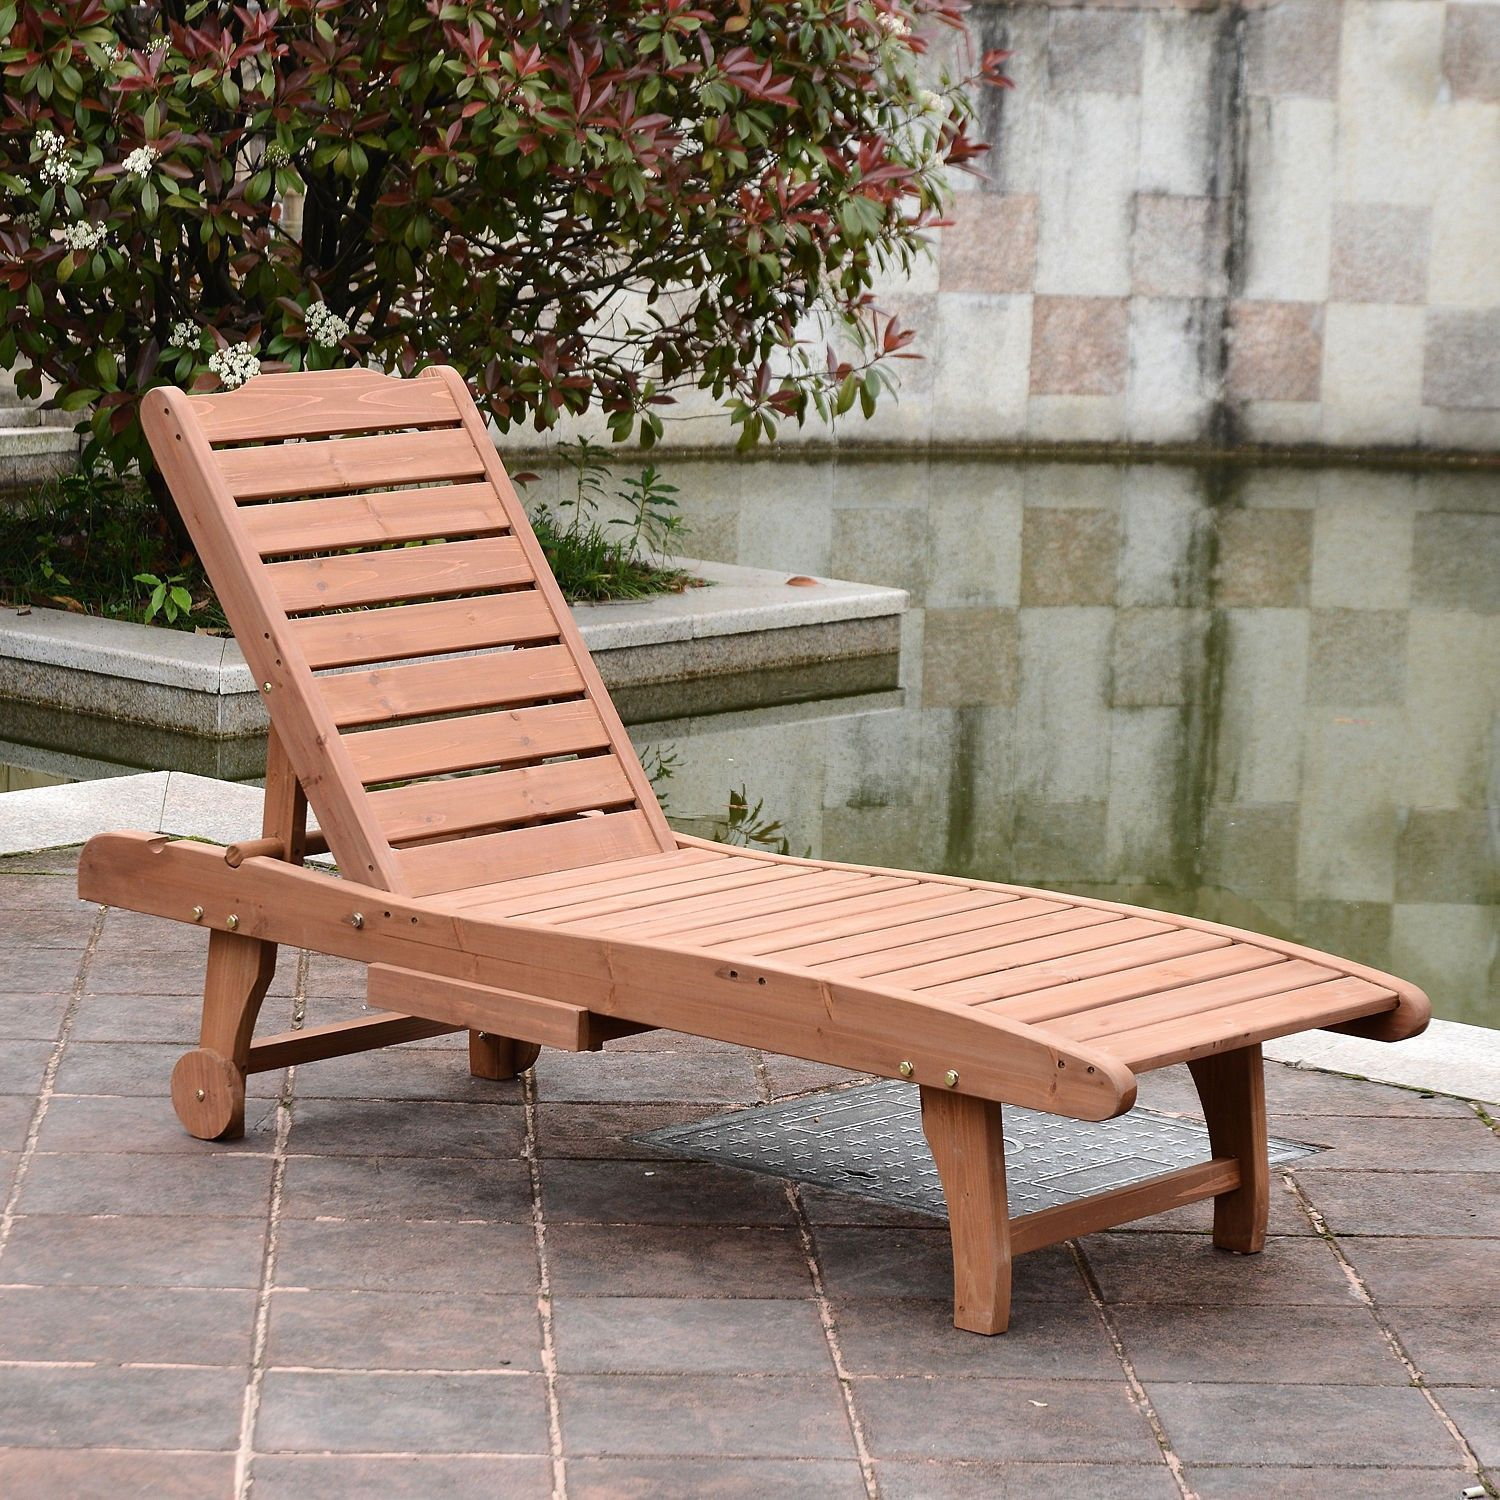 Wooden Wheeled Outdoor Reclining Chaise Lounge Patio Pool Chair